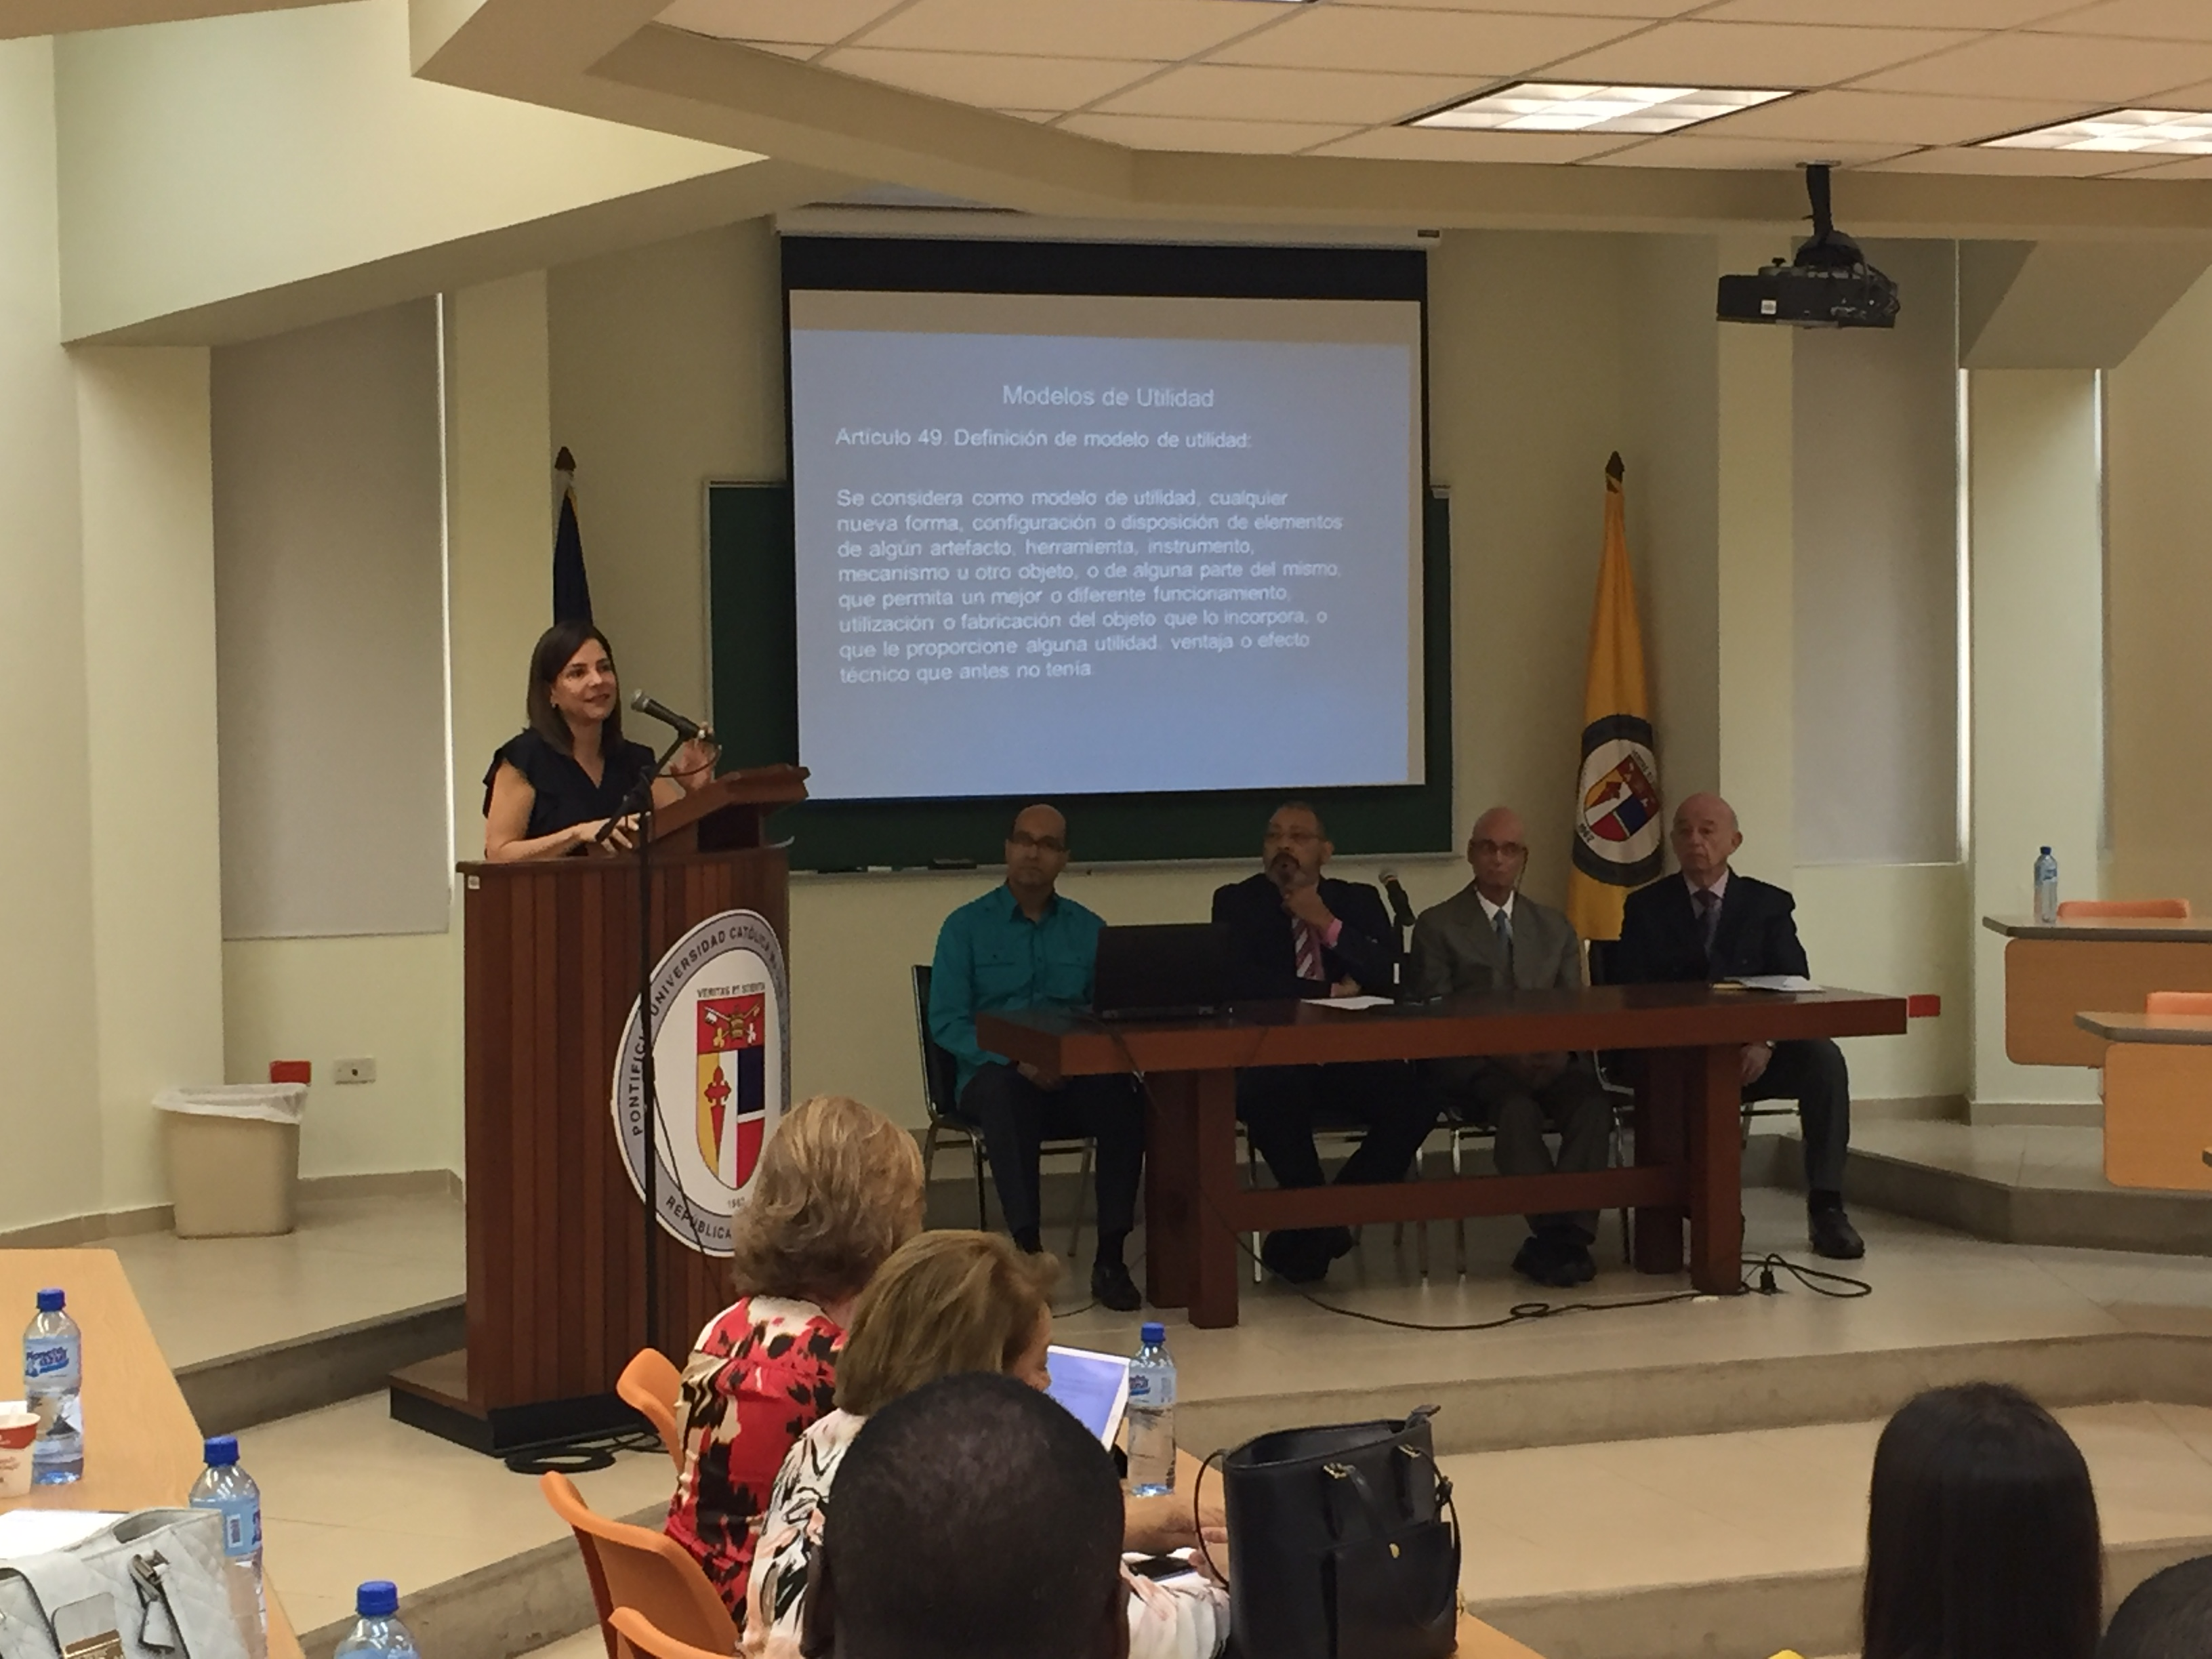 The Course of Intellectual Property for Judges and Prosecutors in the Dominican Republic successfully concludes